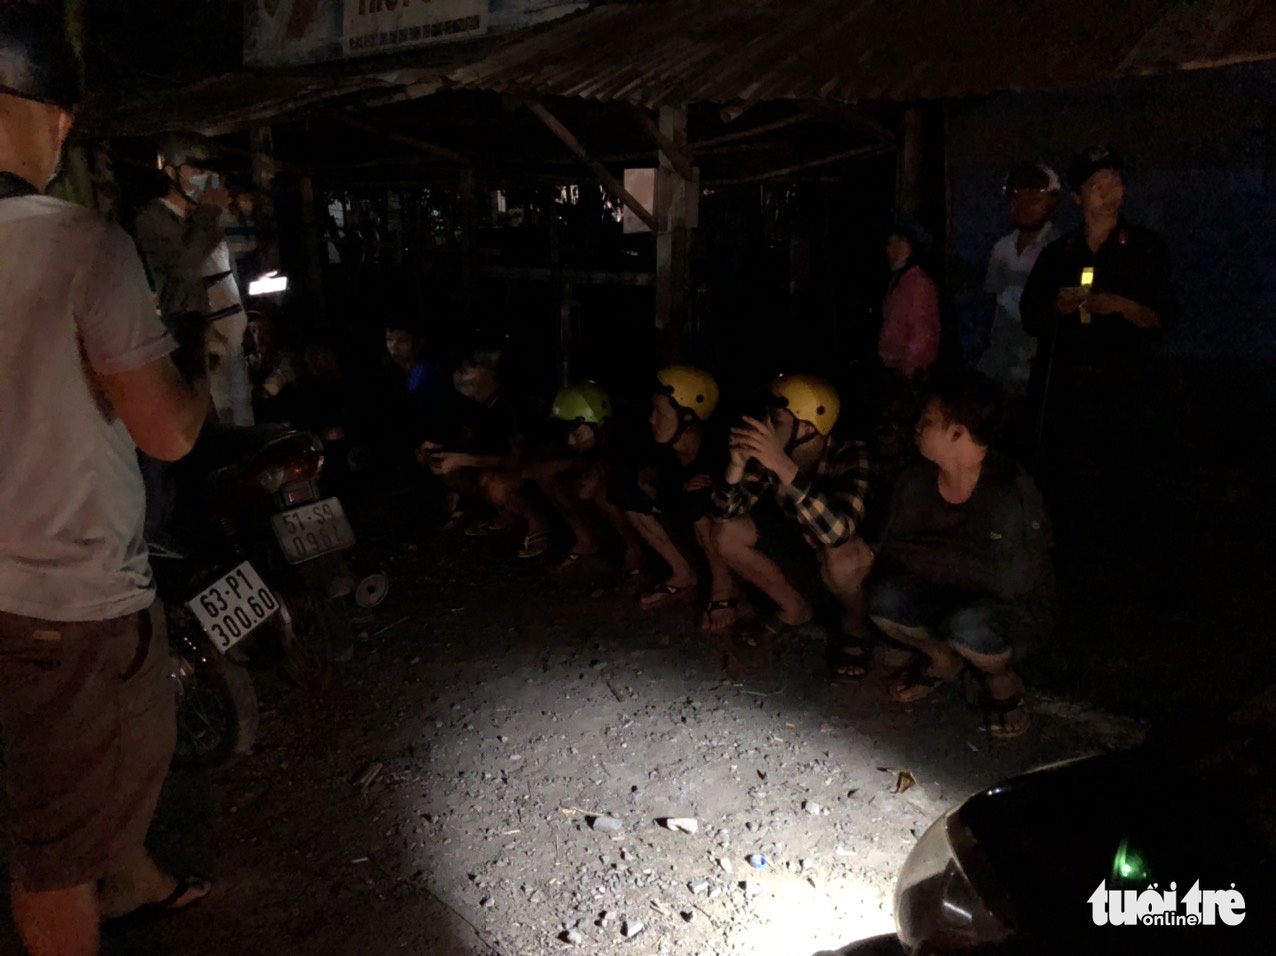 The street racers are arrested in Tien Giang Province, Vietnam on May 2, 2020. Photo: H.T. / Tuoi Tre